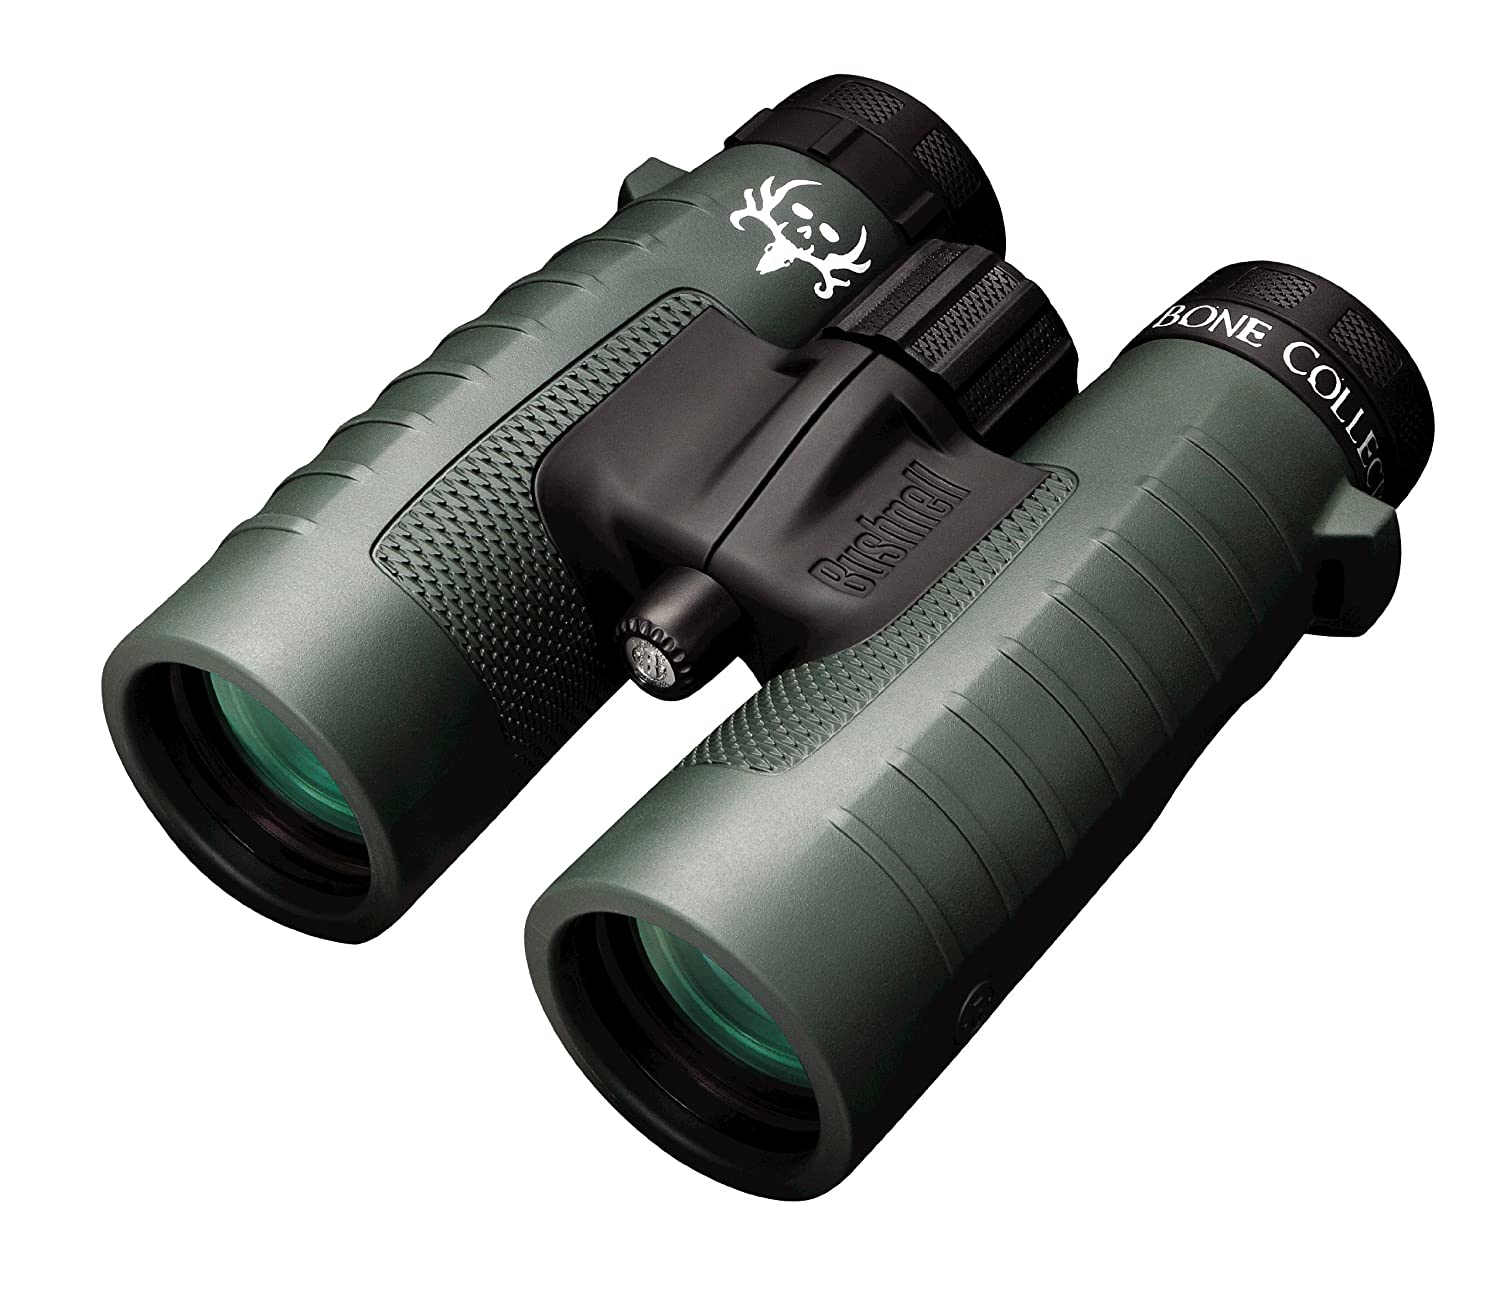 The Best Binoculars Under $100 1